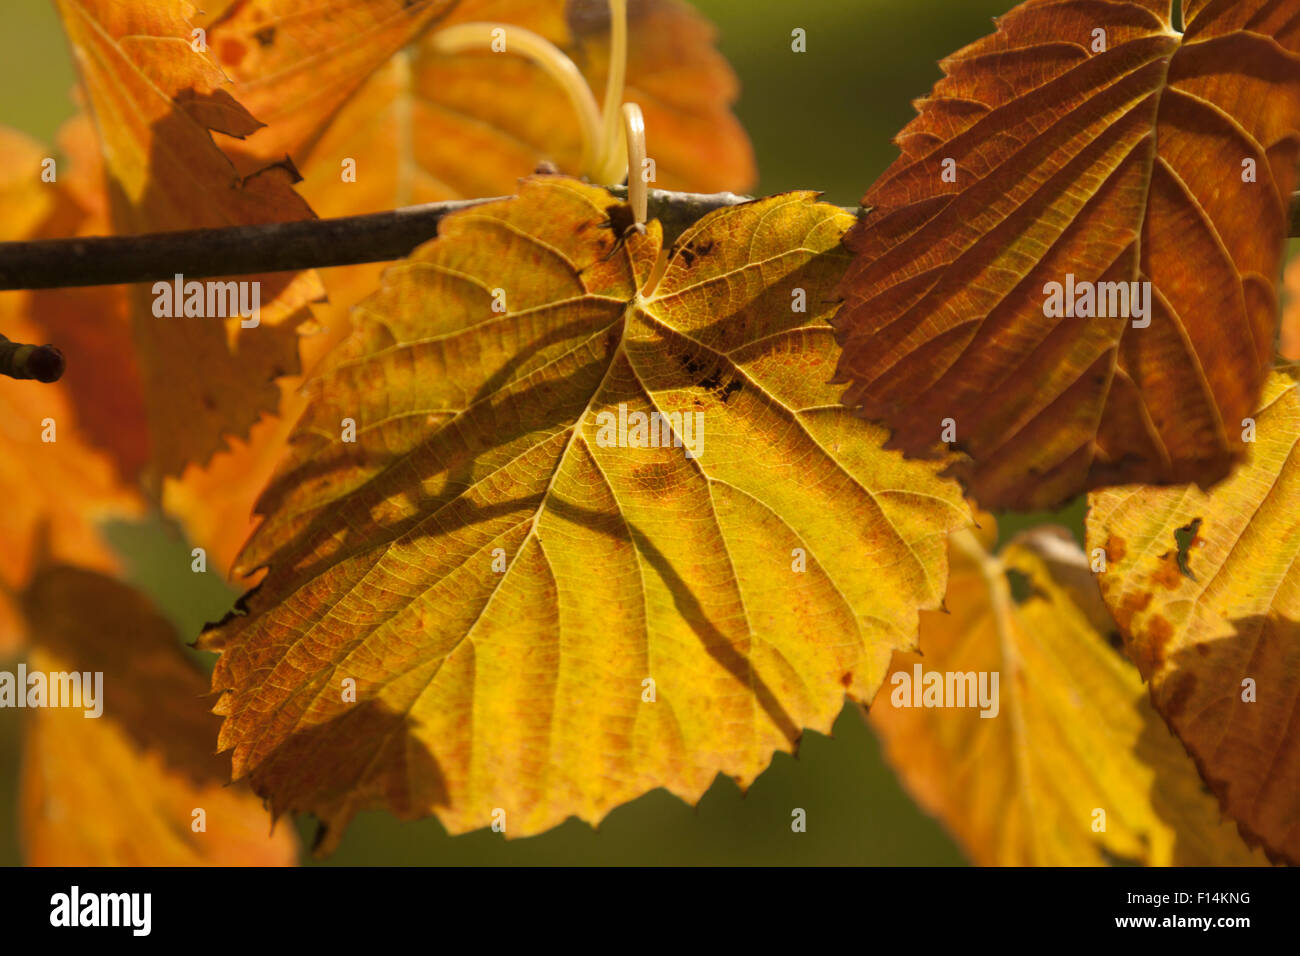 Sunlight on golden beech leaves in fall colors, in the parkland of of Hergest Croft Gardens, Kington, Herefordshire, - Stock Image